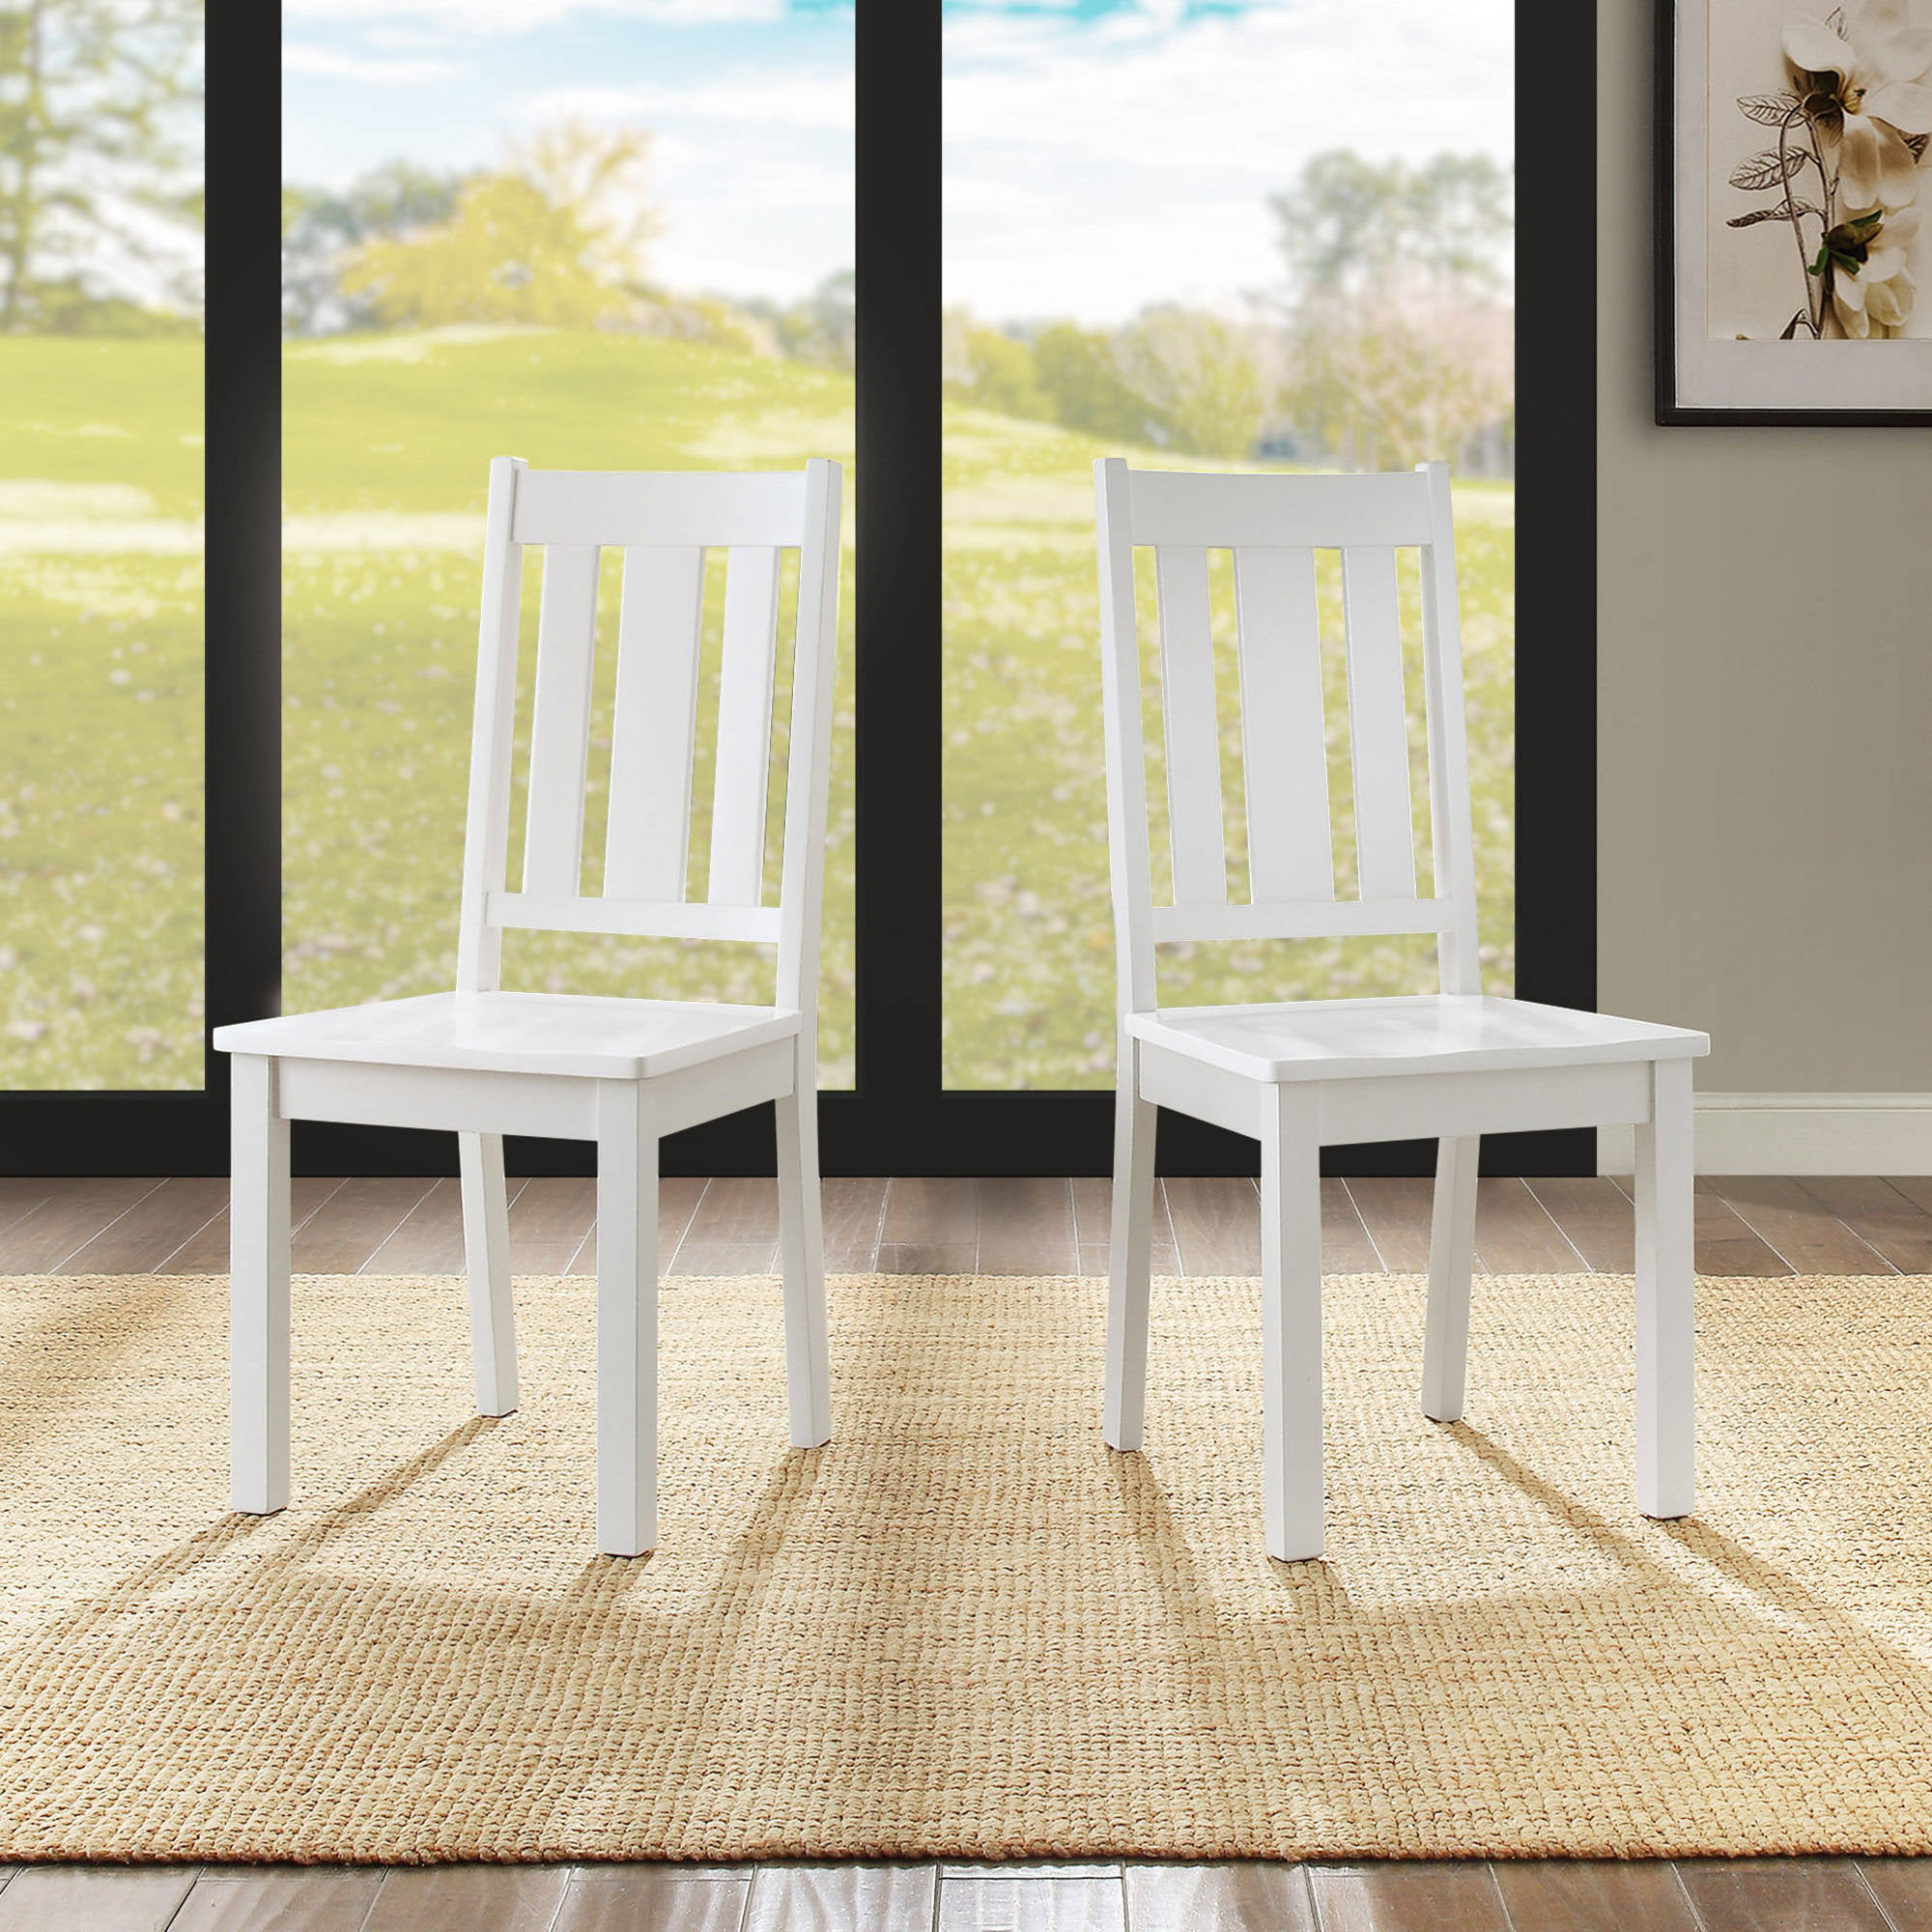 Better Homes and Gardens Bankston Dining Chair, Set of 2, White by WHALEN LIMITED